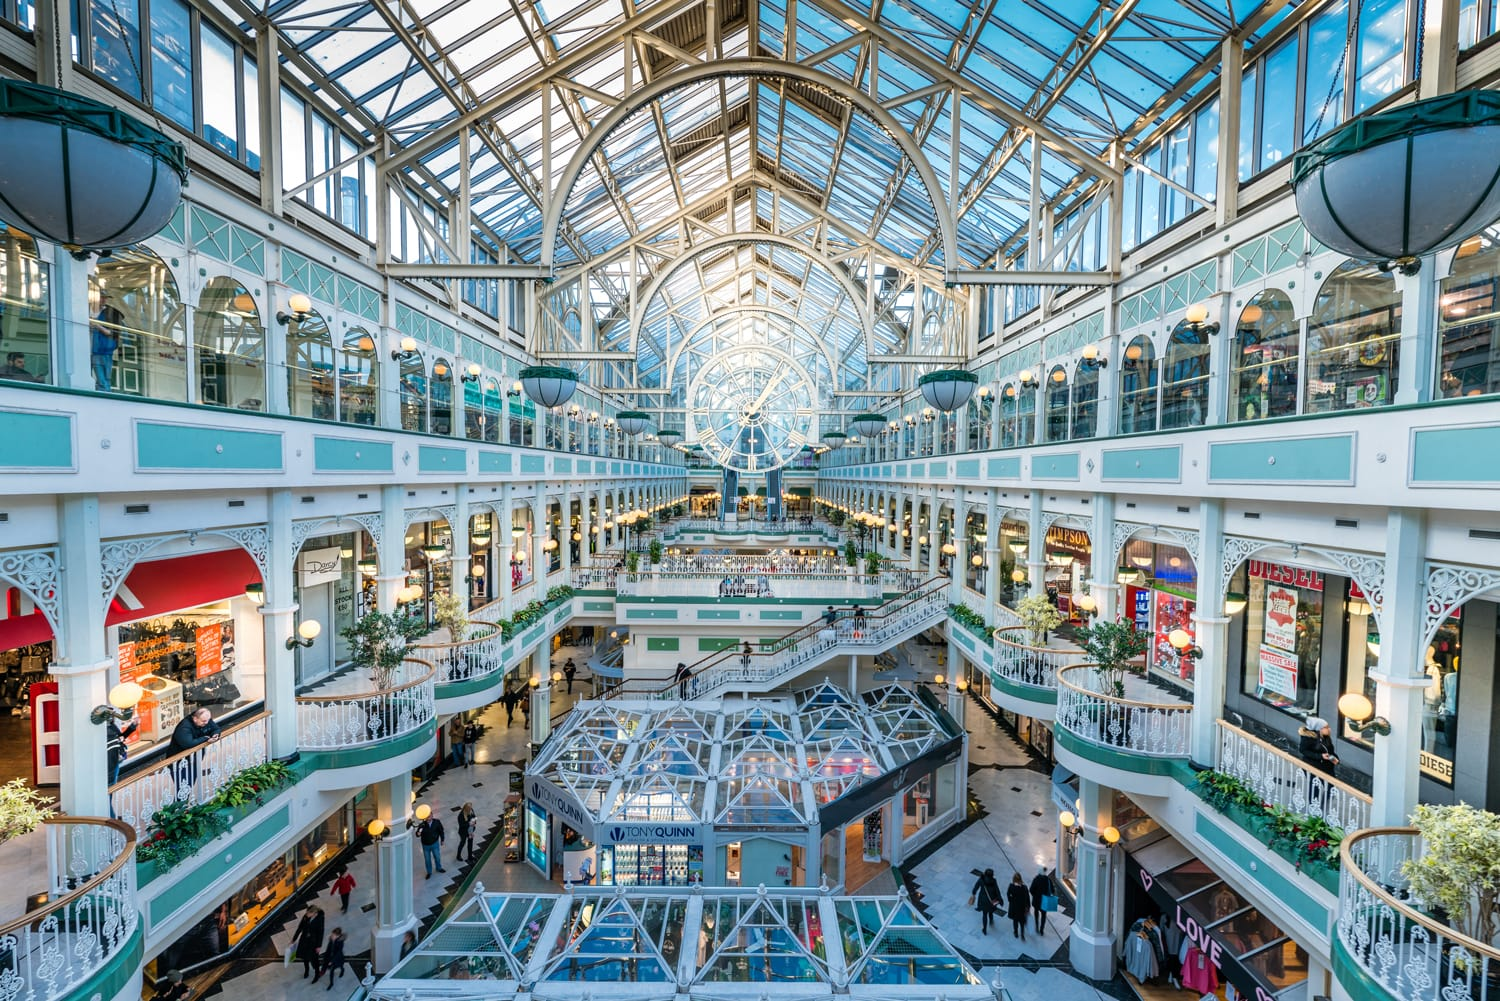 Stephen's Green Shopping Centre in Dublin, Ireland